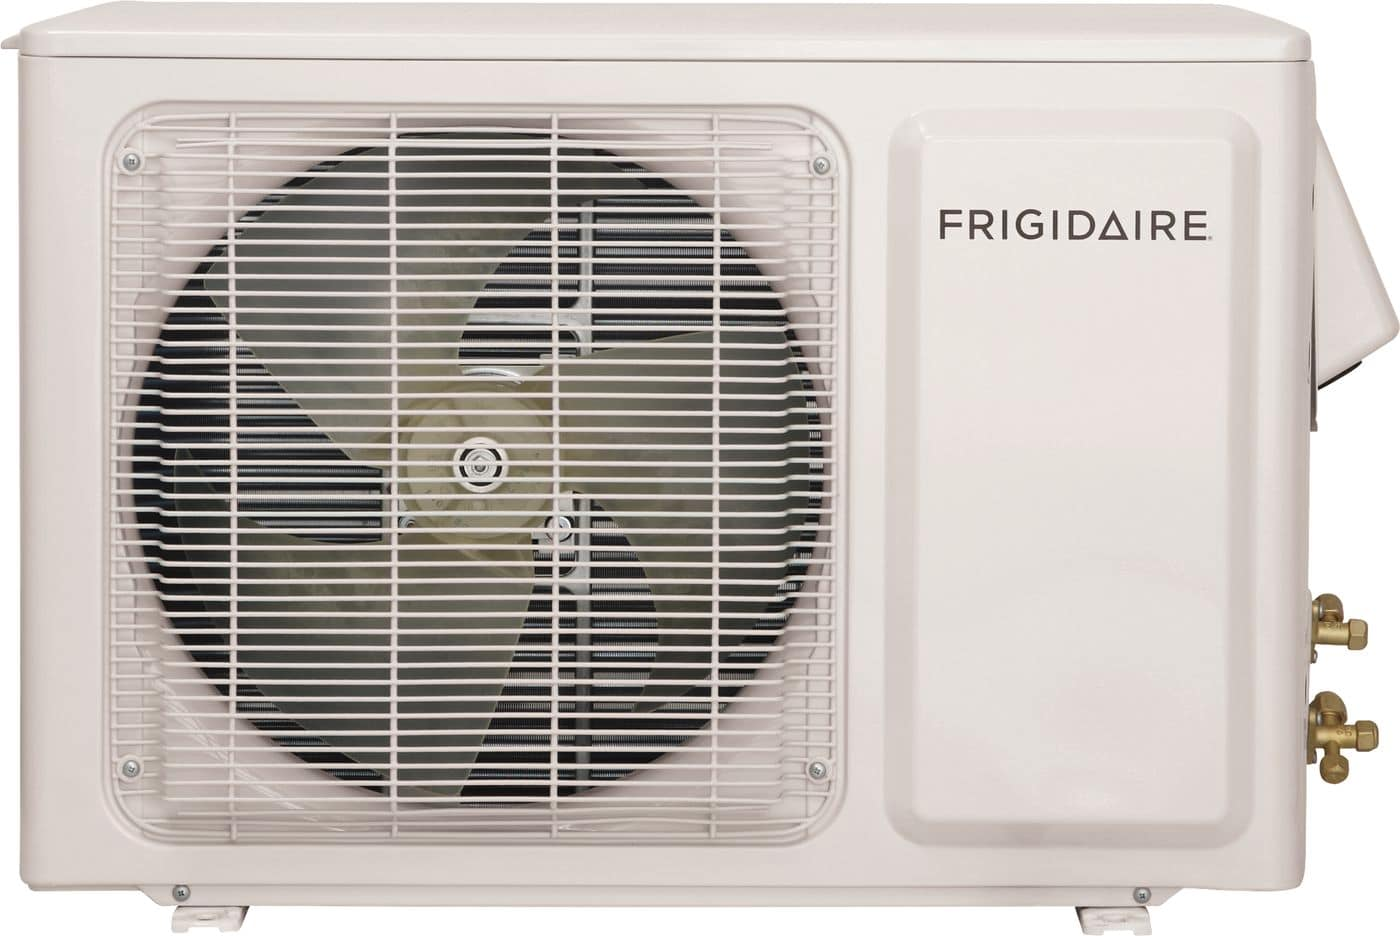 Frigidaire Ductless Split Air Conditioner with Heat Pump 9,000 BTU 230V